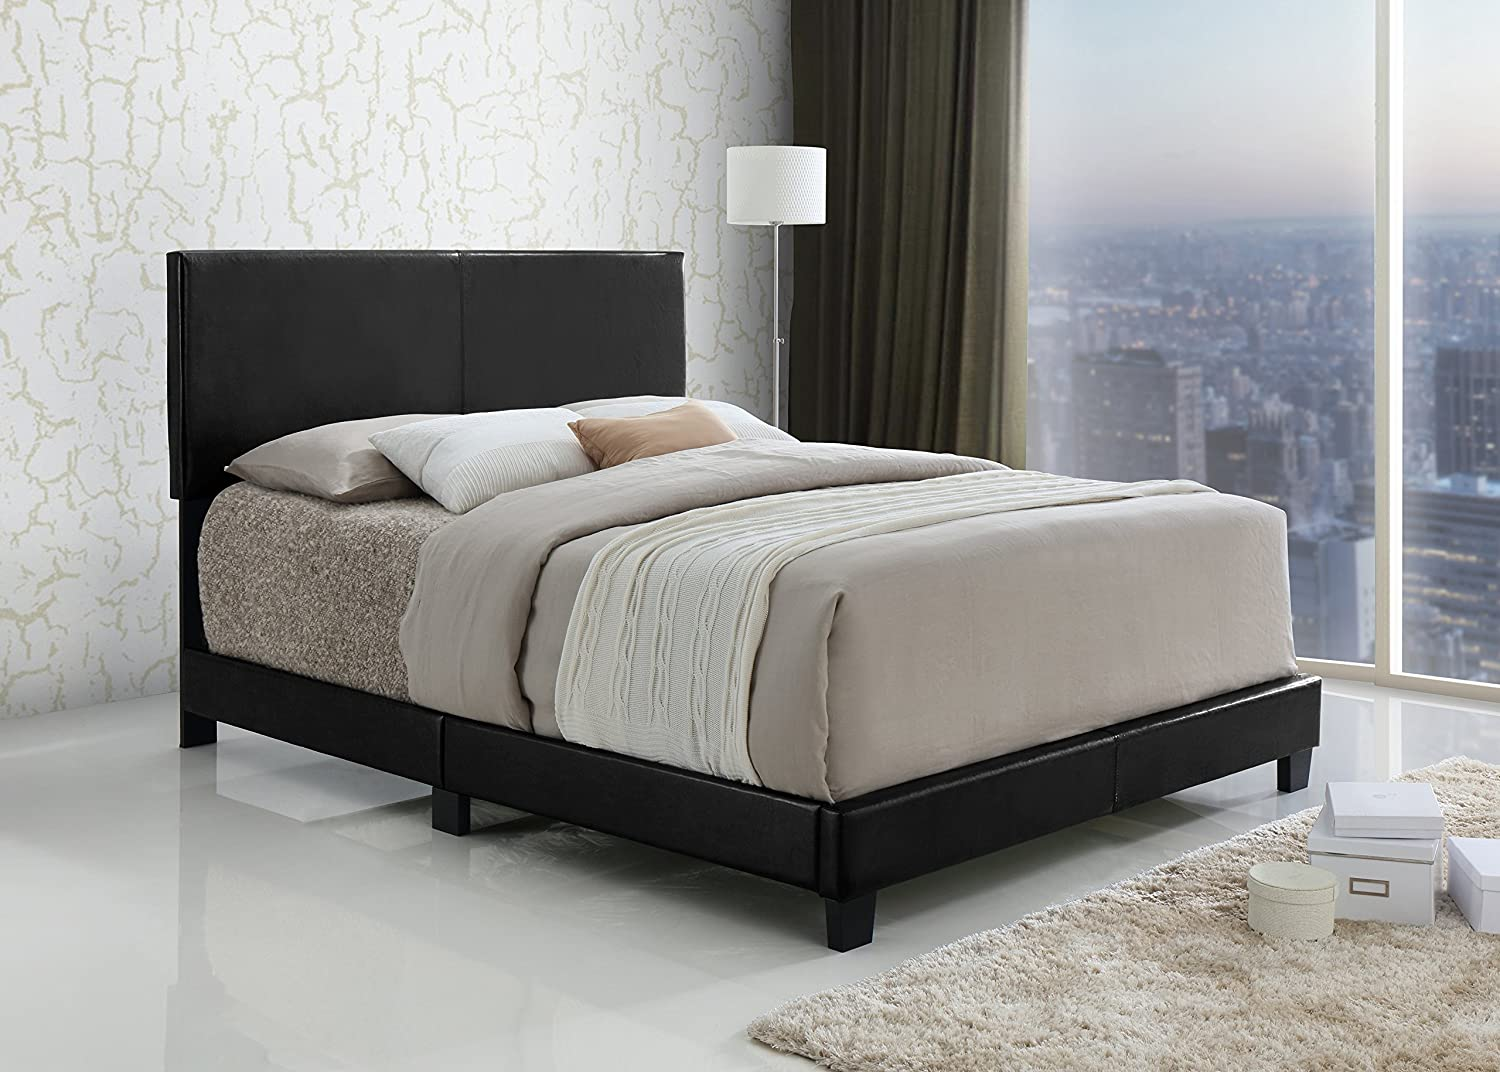 stella dp bed ac white amazon with baxton studio crystal l headboard upholstered tufted modern headboards queen com